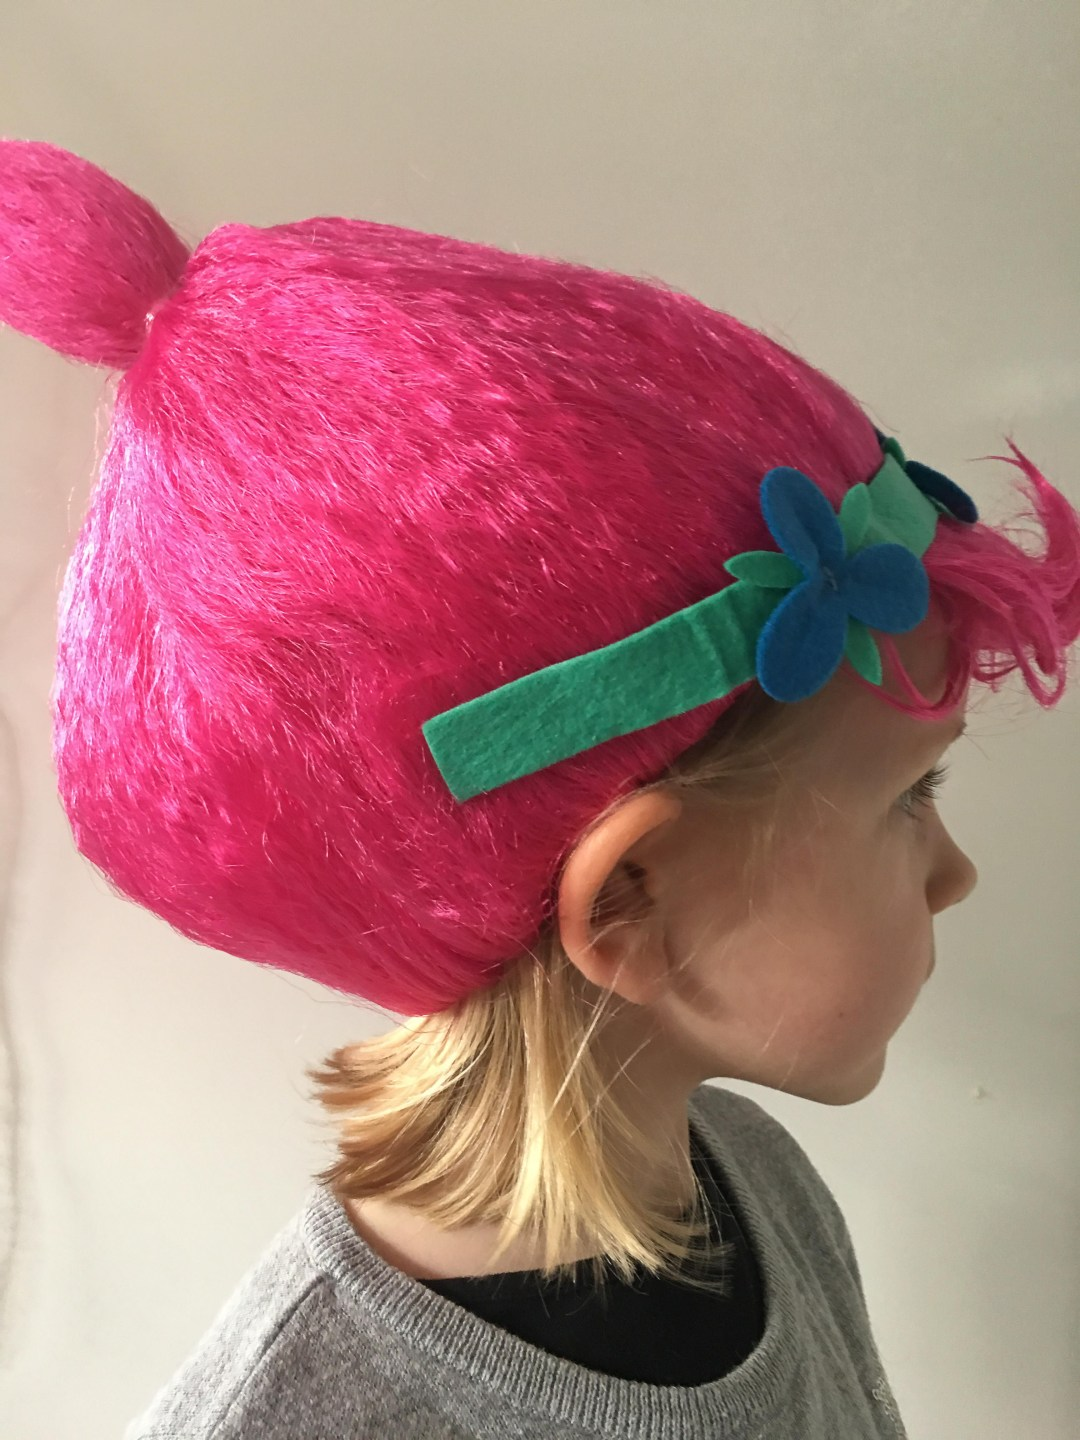 How To Be like Poppy from Trolls